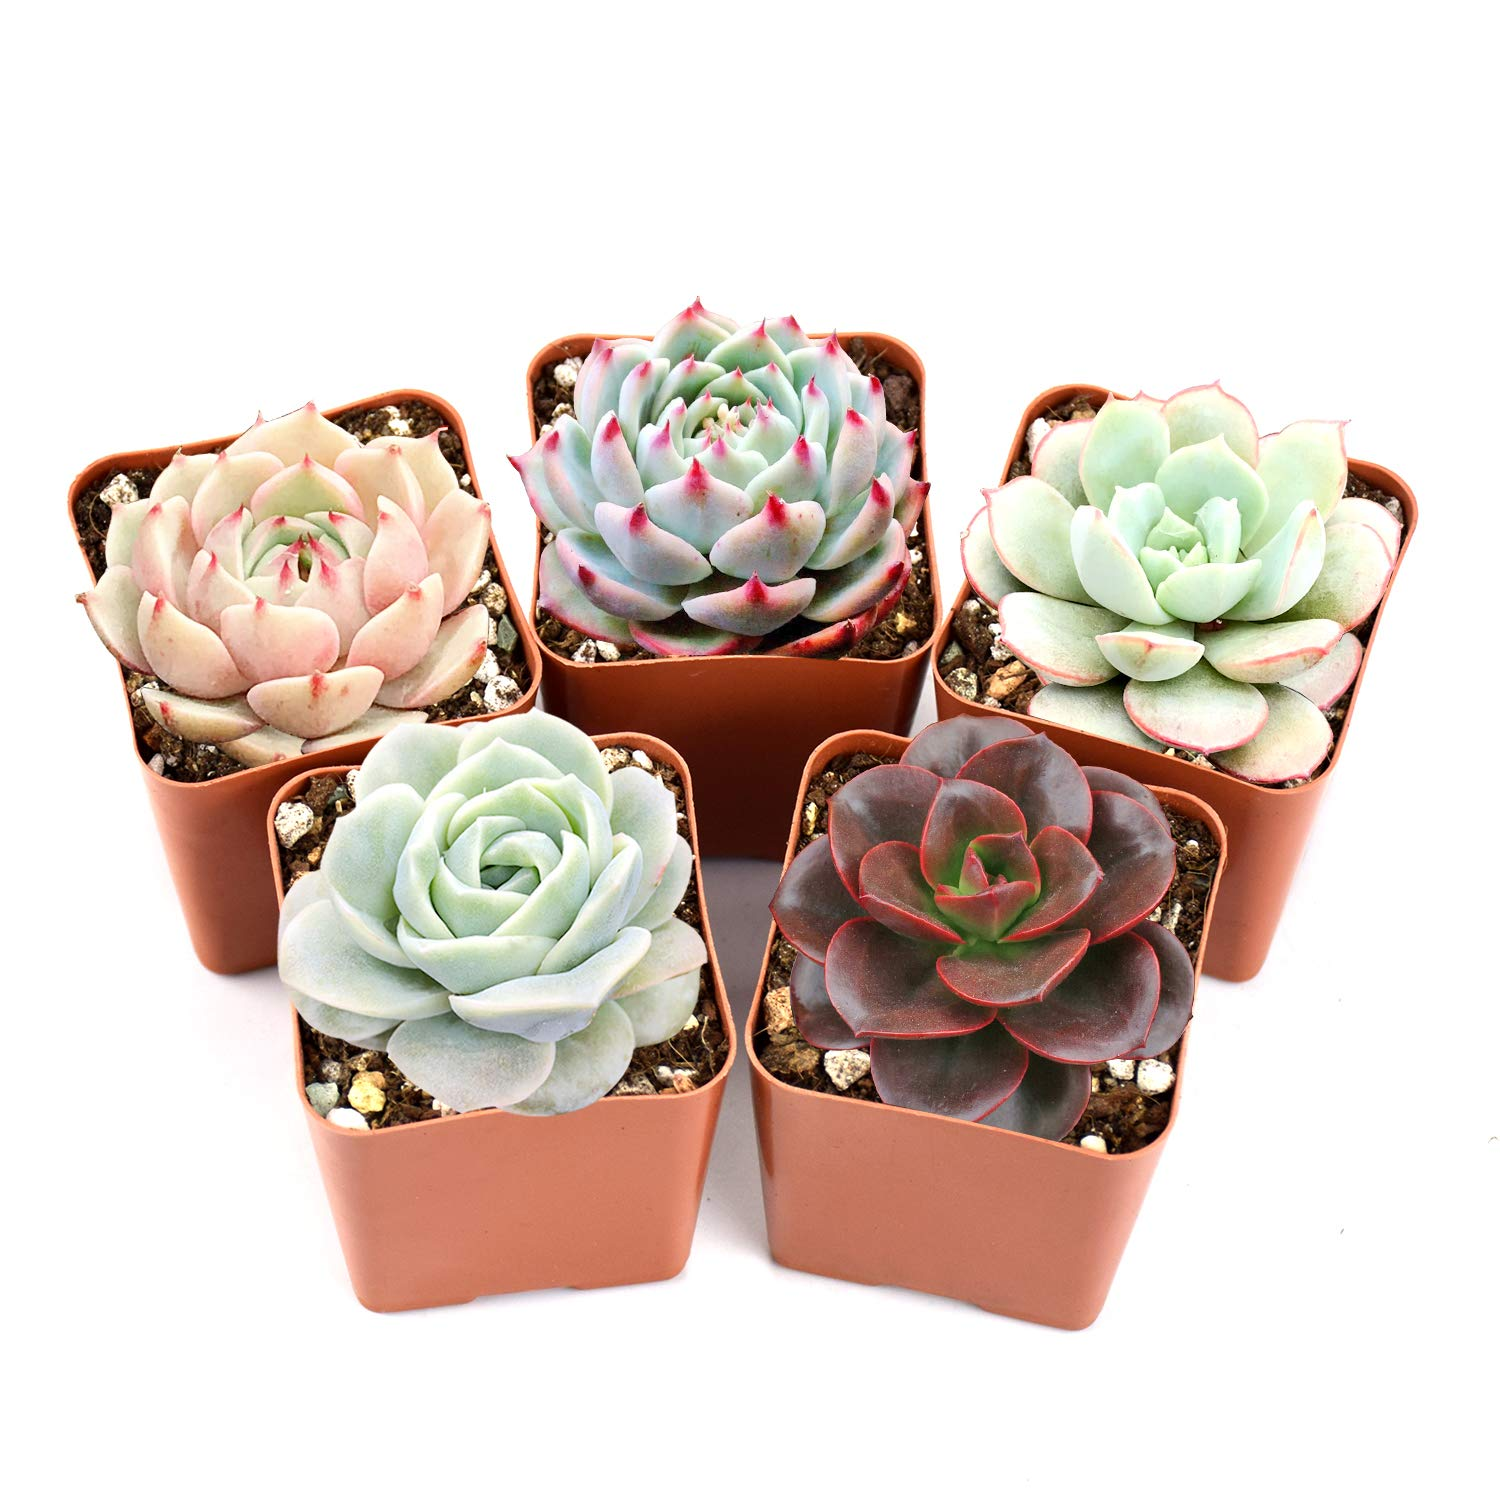 Succulent Plants, 5 Pack of Assorted Rosettes, Fully Rooted in 2'' Planter Pots with Soil, Rare Varieties, Unique Real Live Indoor Succulents/Cactus Décor by The Next Gardener